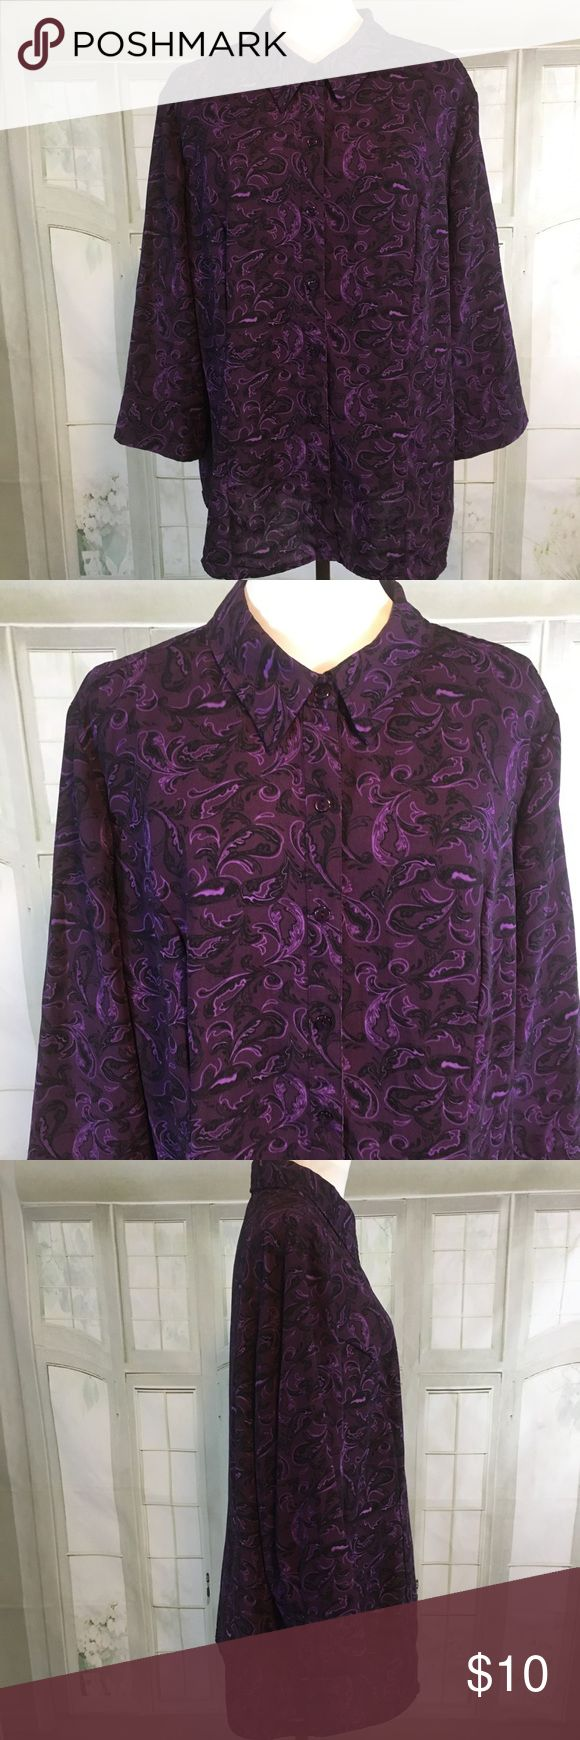 """Laura Scott Paisley Purple Button Down Blouse XL Laura Scott Paisley Purple Button Down Blouse XL. Beautiful Paisley Pattern in Hues of purple. Excellent condition - no flaws. 100% Polyester. Pit to Pit: 24.5"""". Length:  27"""". Laura Scott Tops Button Down Shirts"""